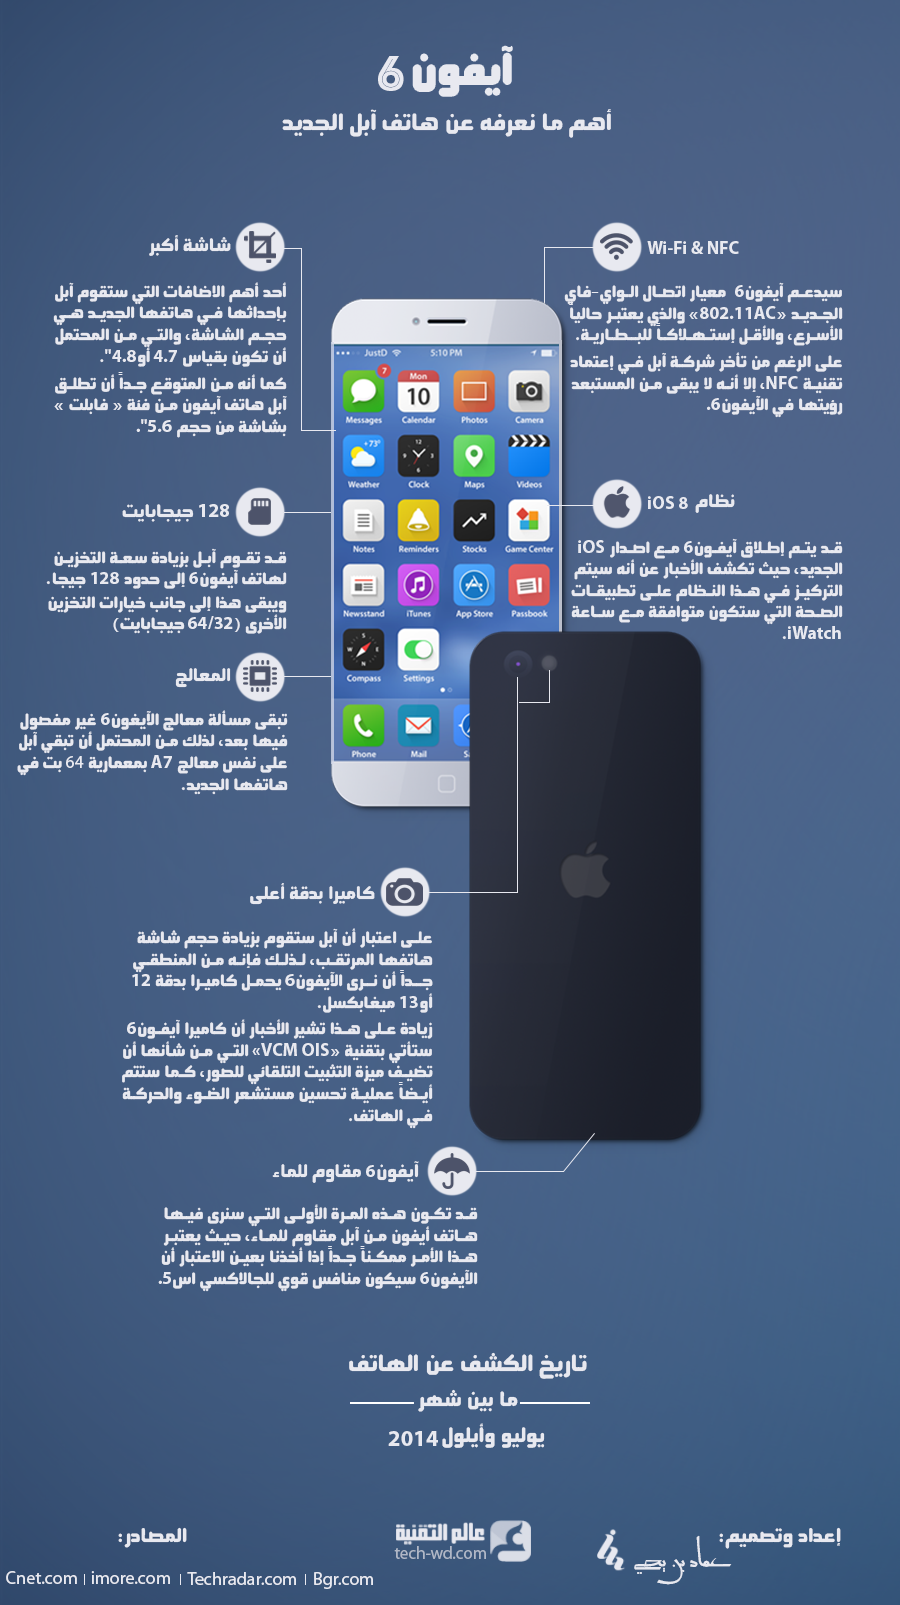 iphone6 what to expect from the new iphone إنفوجرافيك: أهم ما نعرفه عن هاتف آيفون 6